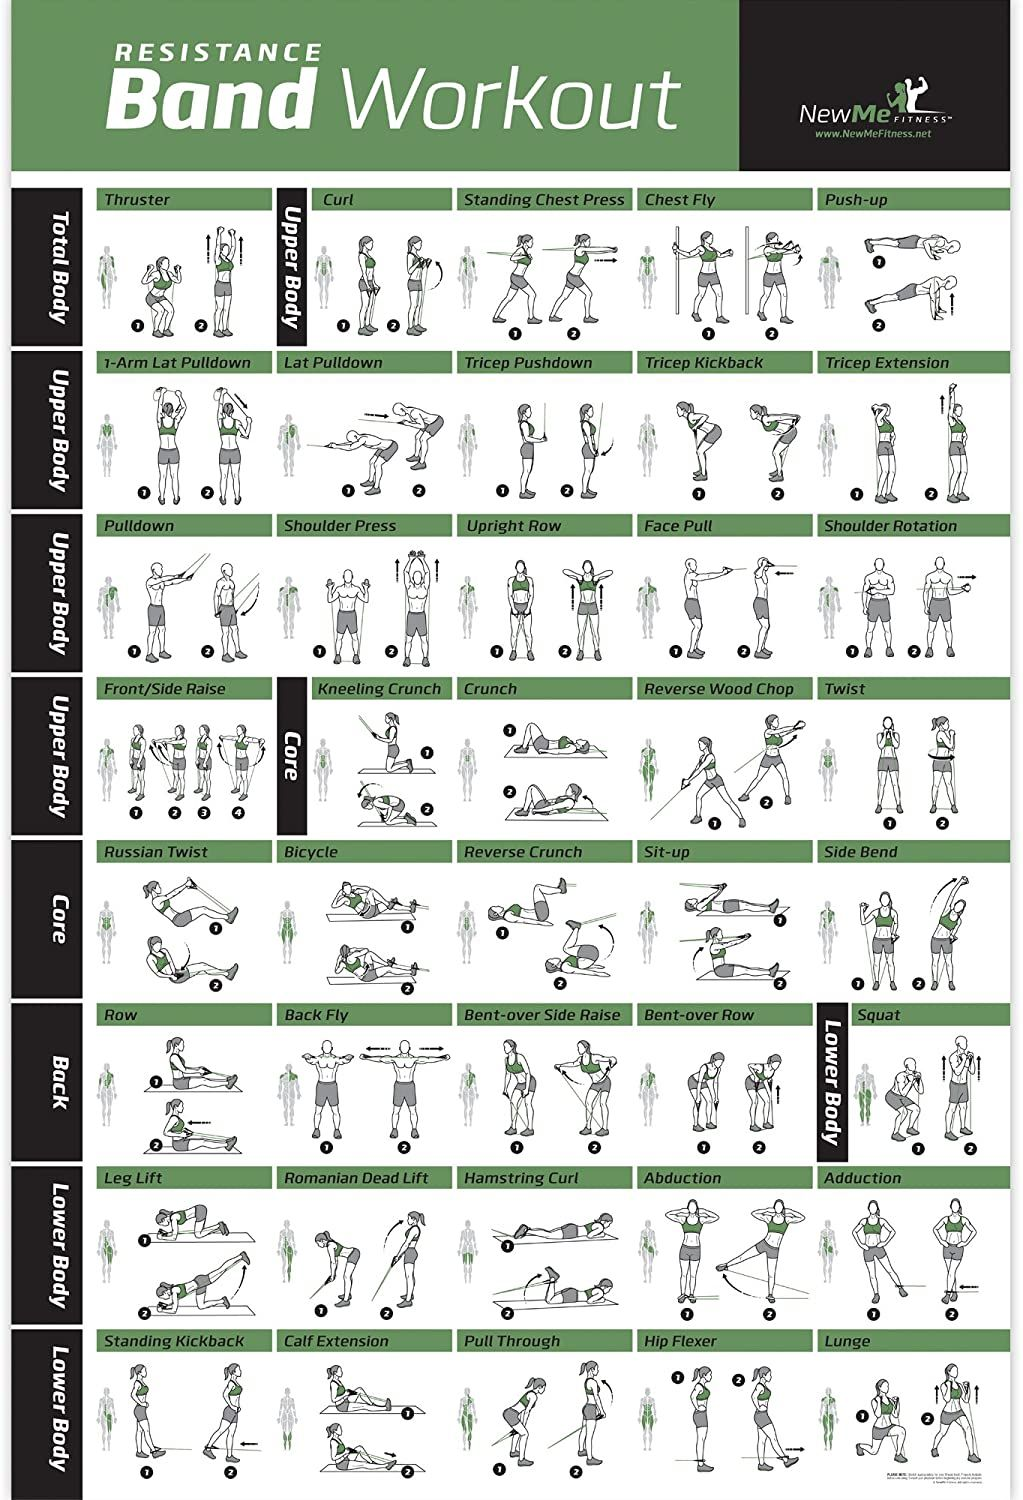 NewMe Resistance Band Workout